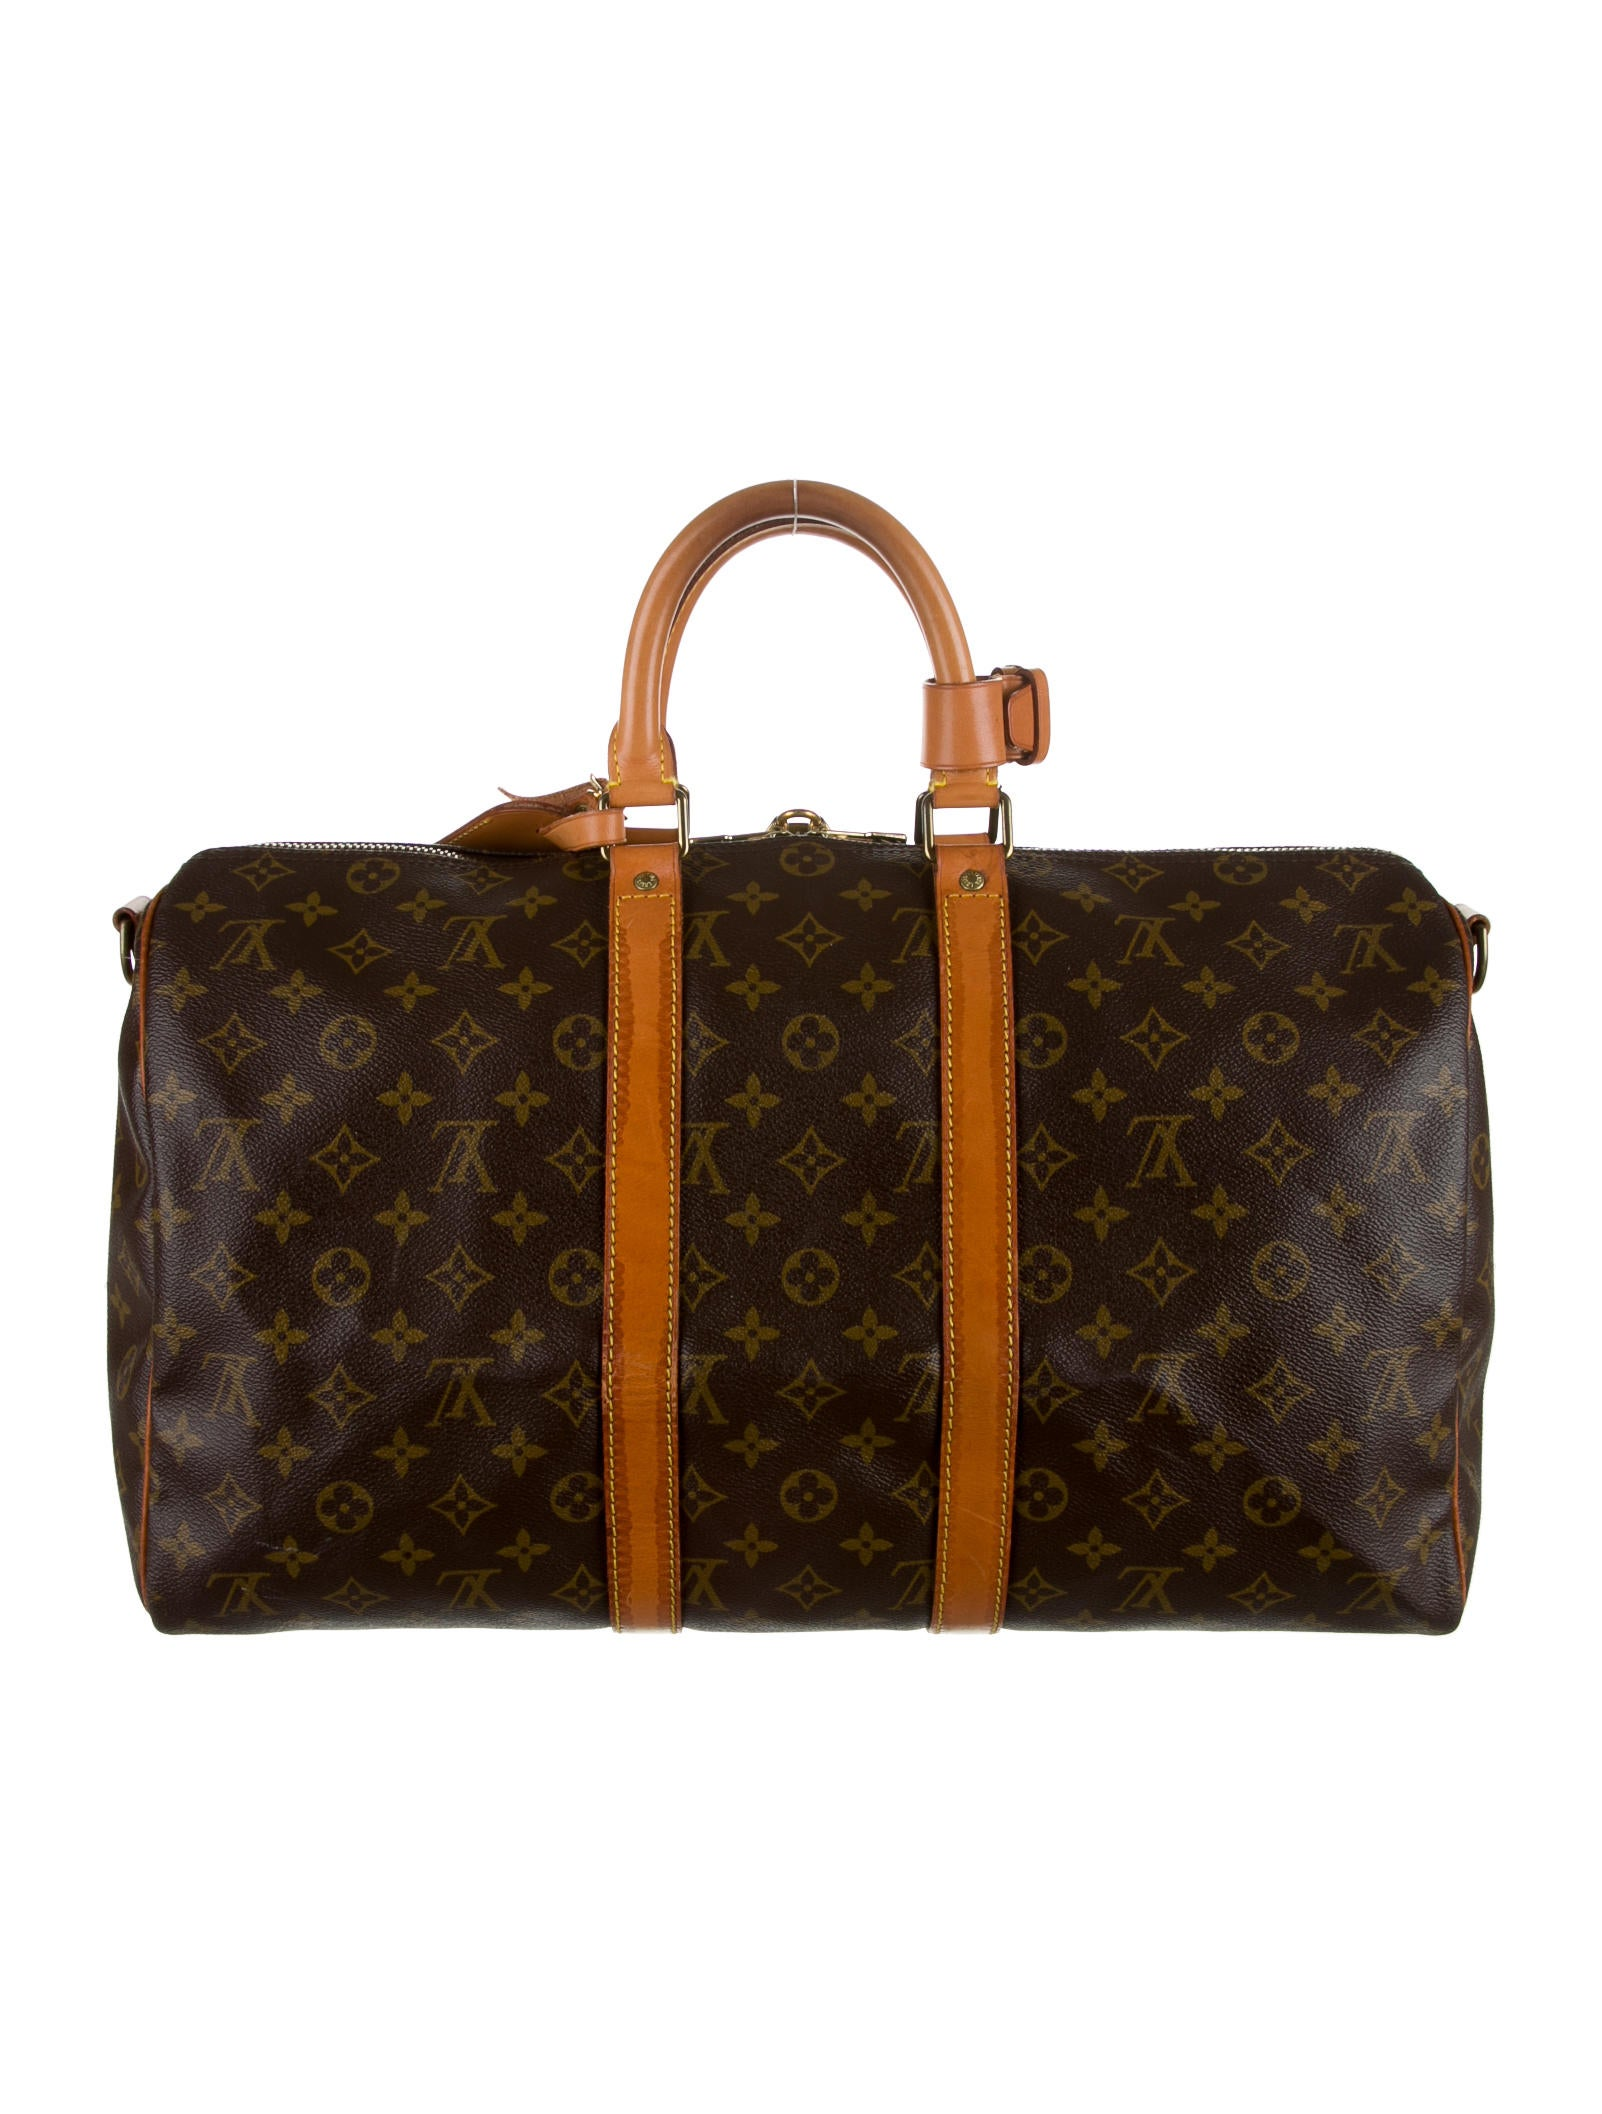 louis vuitton monogram keepall bandouli re 45 handbags. Black Bedroom Furniture Sets. Home Design Ideas